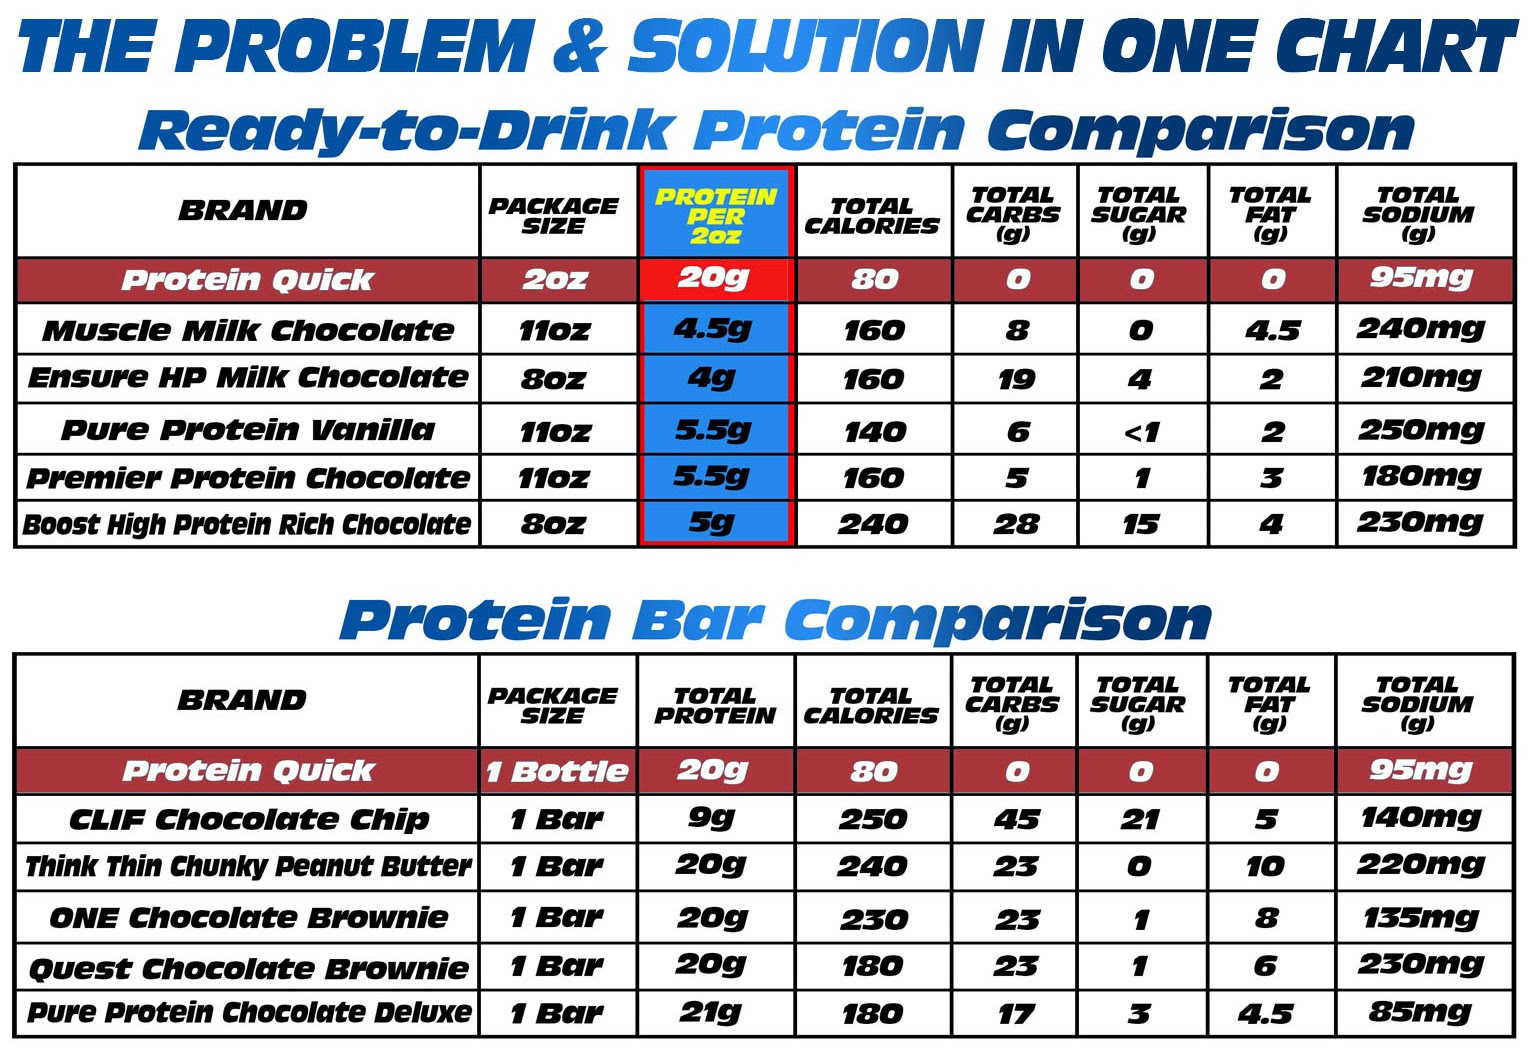 Protein Quick Nutritional Facts